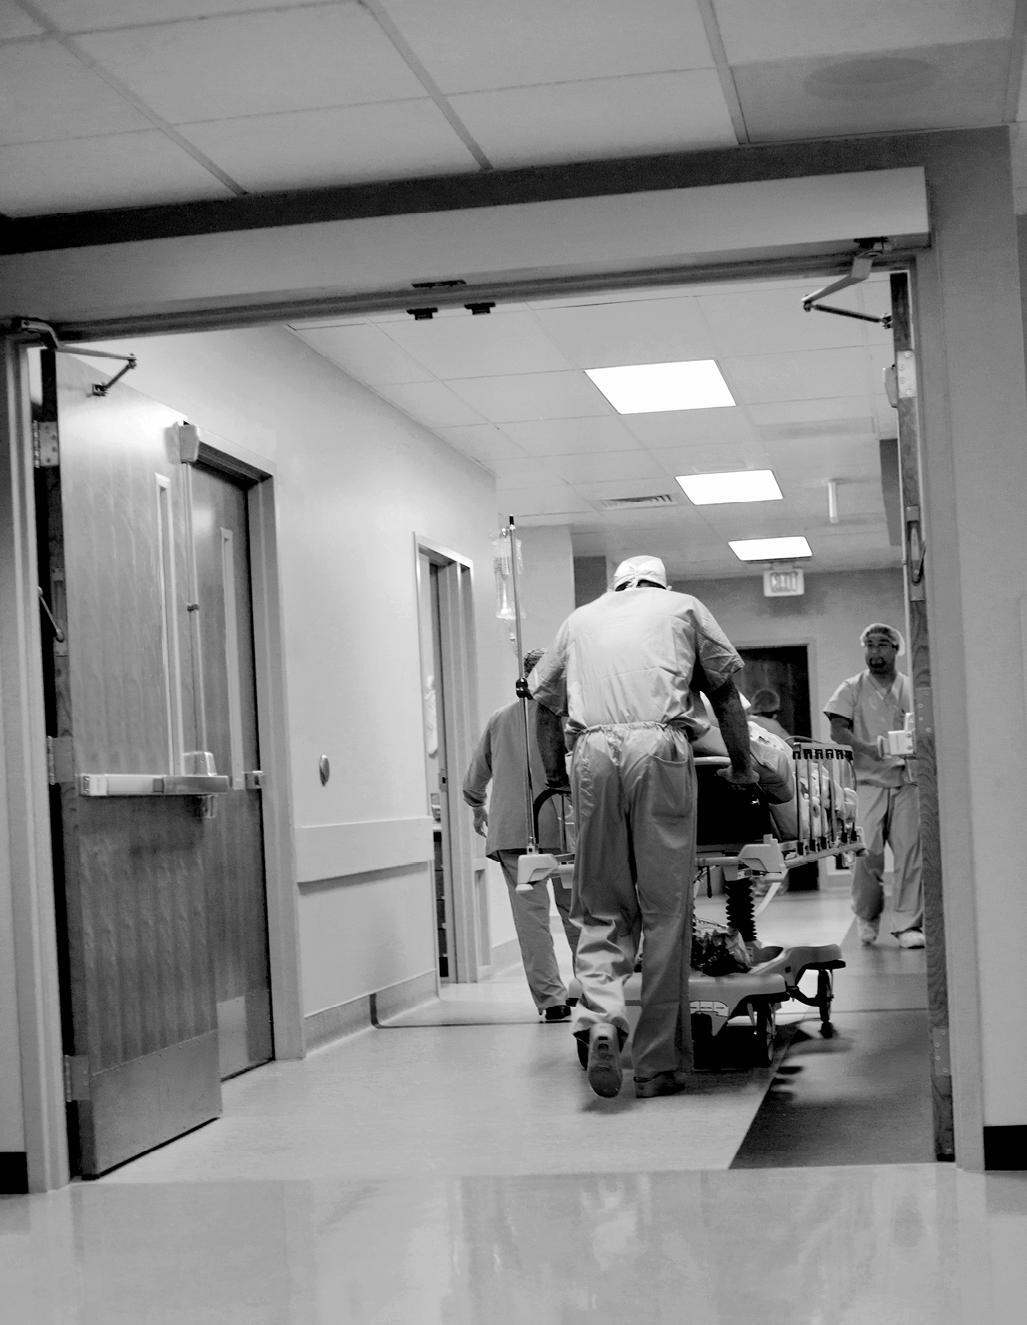 Nurses rush a patient through an egress with the doors wide open